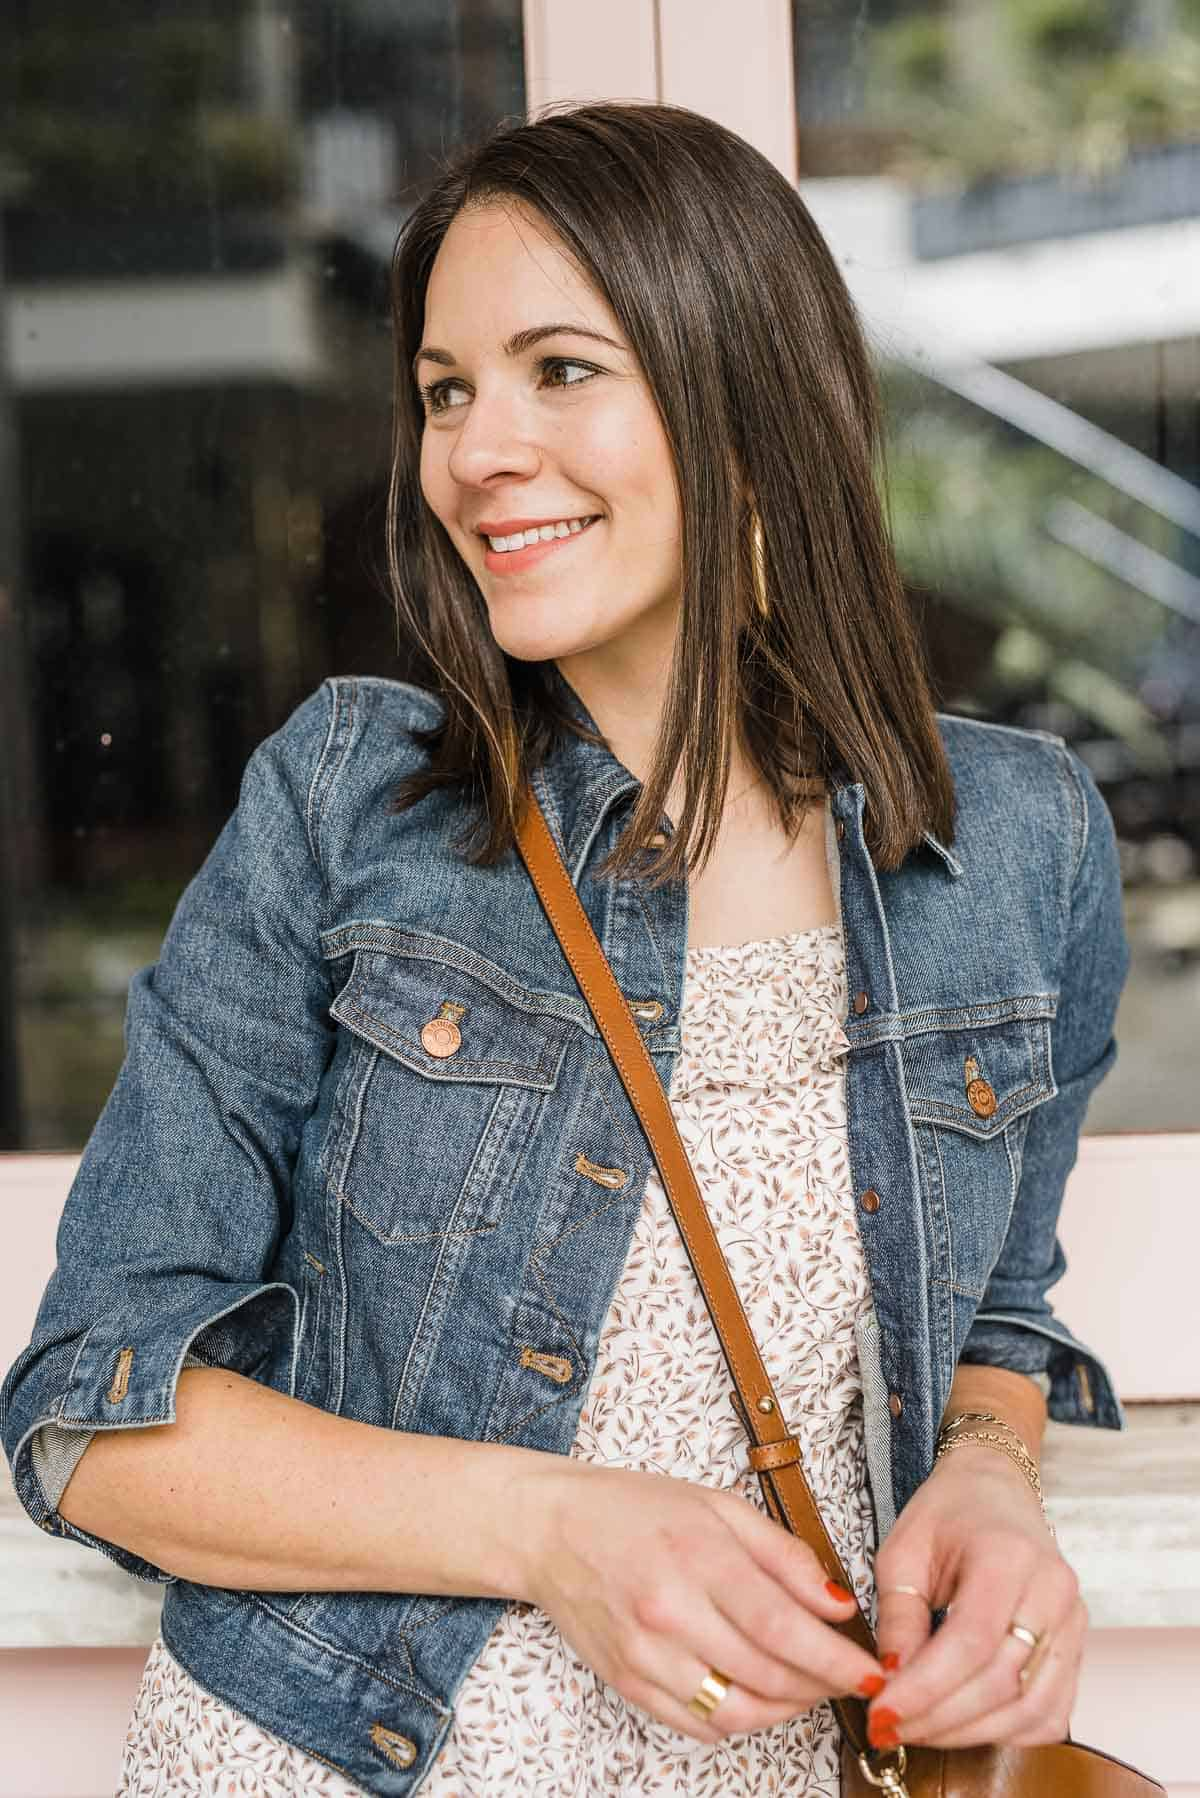 JESSICA CAMERATA IS WEARING A MADEWELL DENIM JACKET